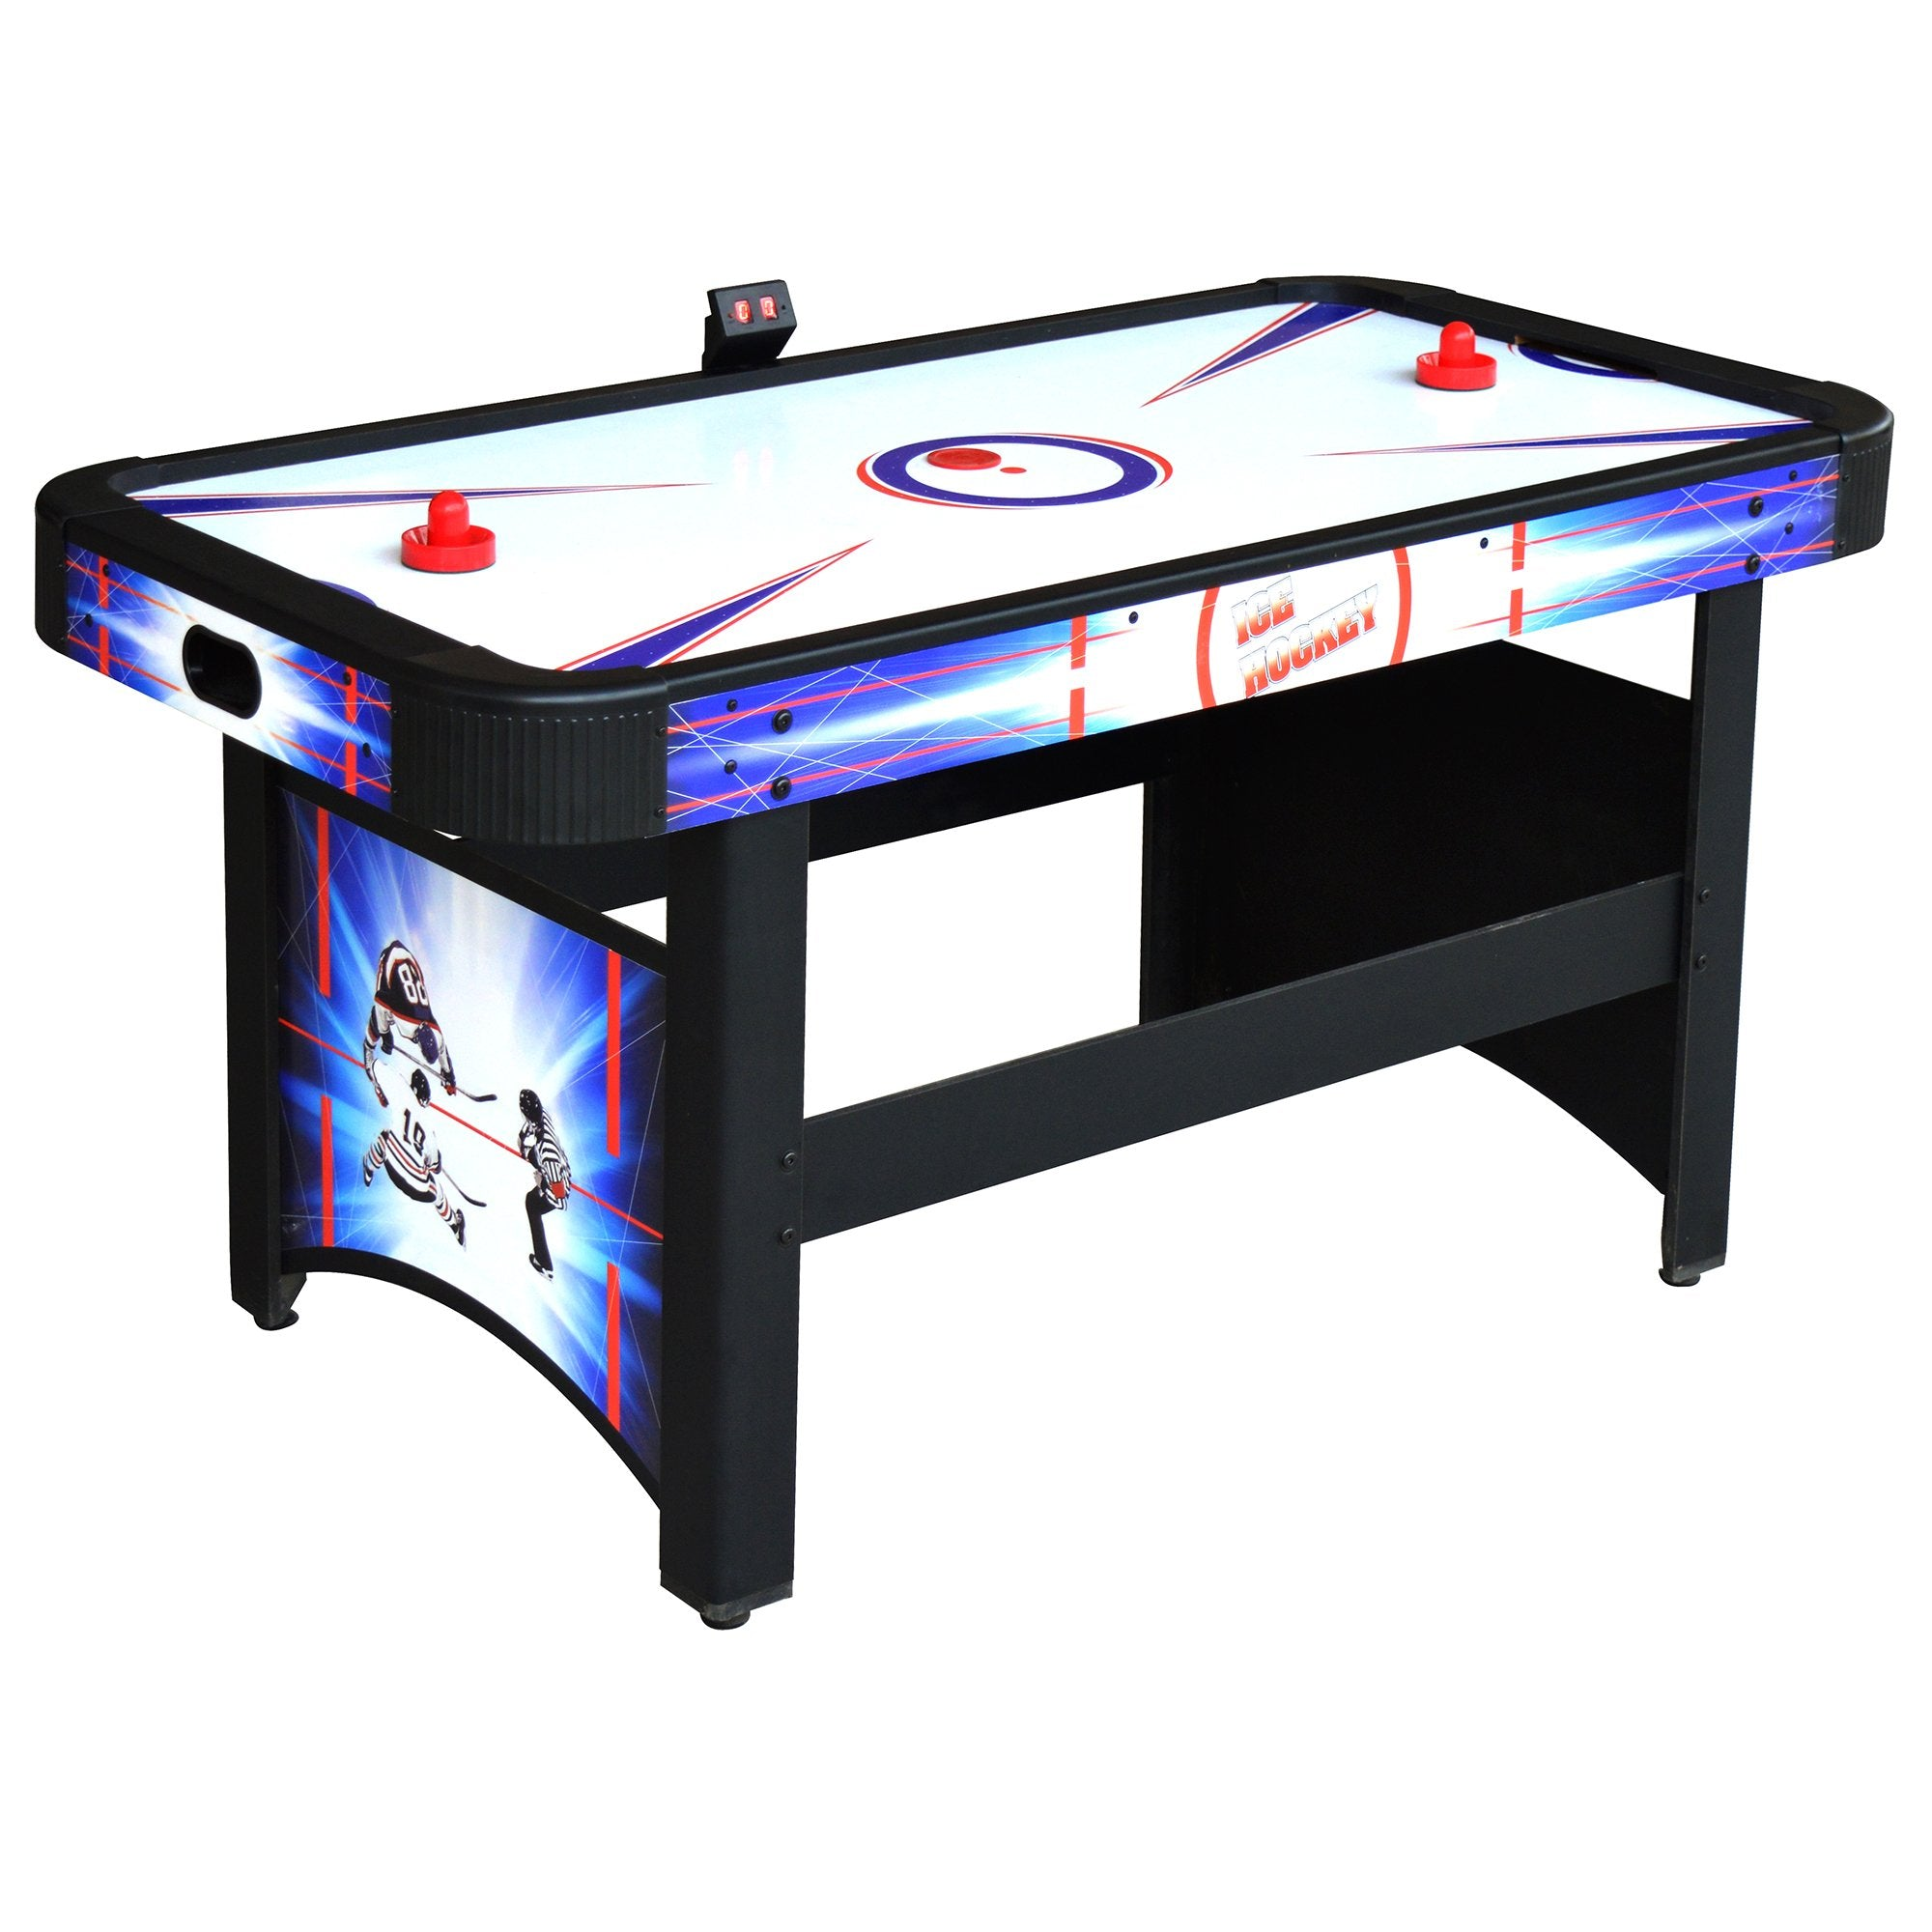 Hathaway Patriot 5ft Air Hockey Table - Gaming Blaze